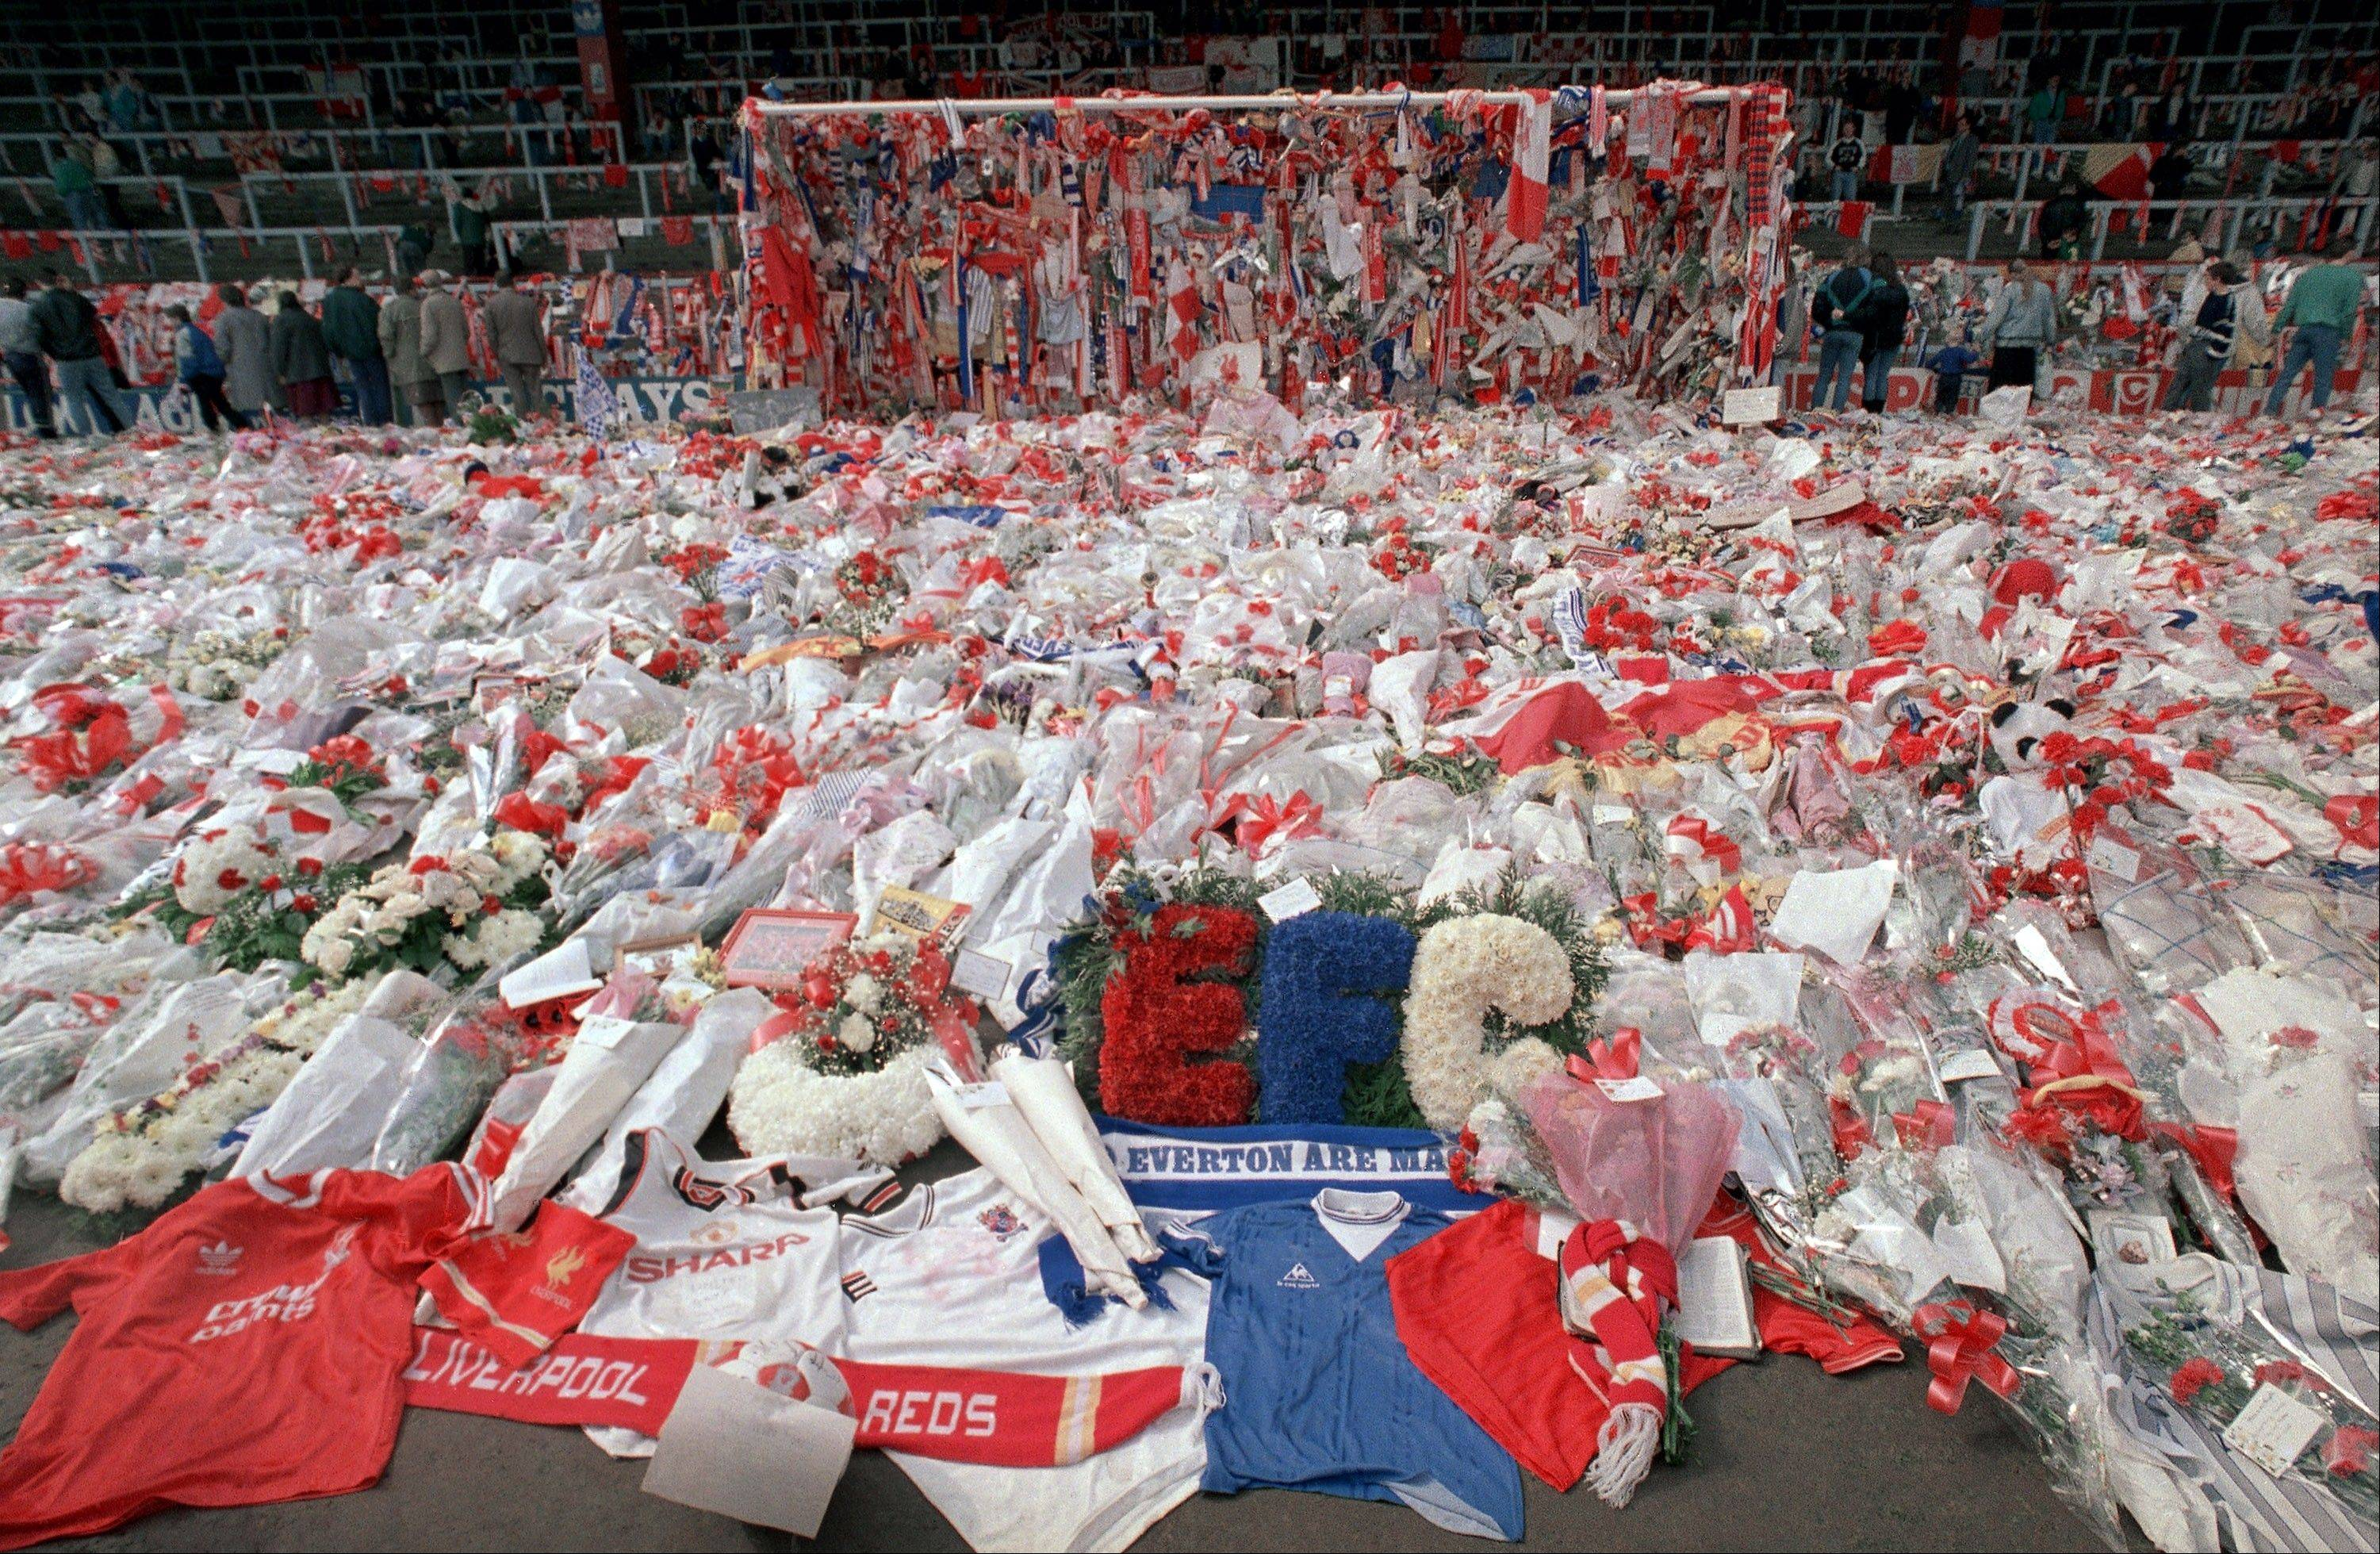 Liverpool soccer fans arrive at Anfield Stadium to pay their respects as flower tributes cover the 'Kop' end of the field, in Liverpool, on April 17, 1989, following April 15, when fans surged forward during the FA Cup semi-final between Liverpool and Nottingham Forest at Hillsborough Stadium in Sheffield, when the crash barriers gave way, killing 96 Liverpool fans and injuring over 200 others. After a long campaign by relatives of the 96 soccer fans who were crushed to death in Britain�s worst sporting disaster, some 400,000 pages of previously undisclosed papers will be released Wednesday Sept. 12, 2012, and the previously secret documents may clarify what caused the disaster and how mistakes by British authorities may have contributed to the 1989 tragedy.